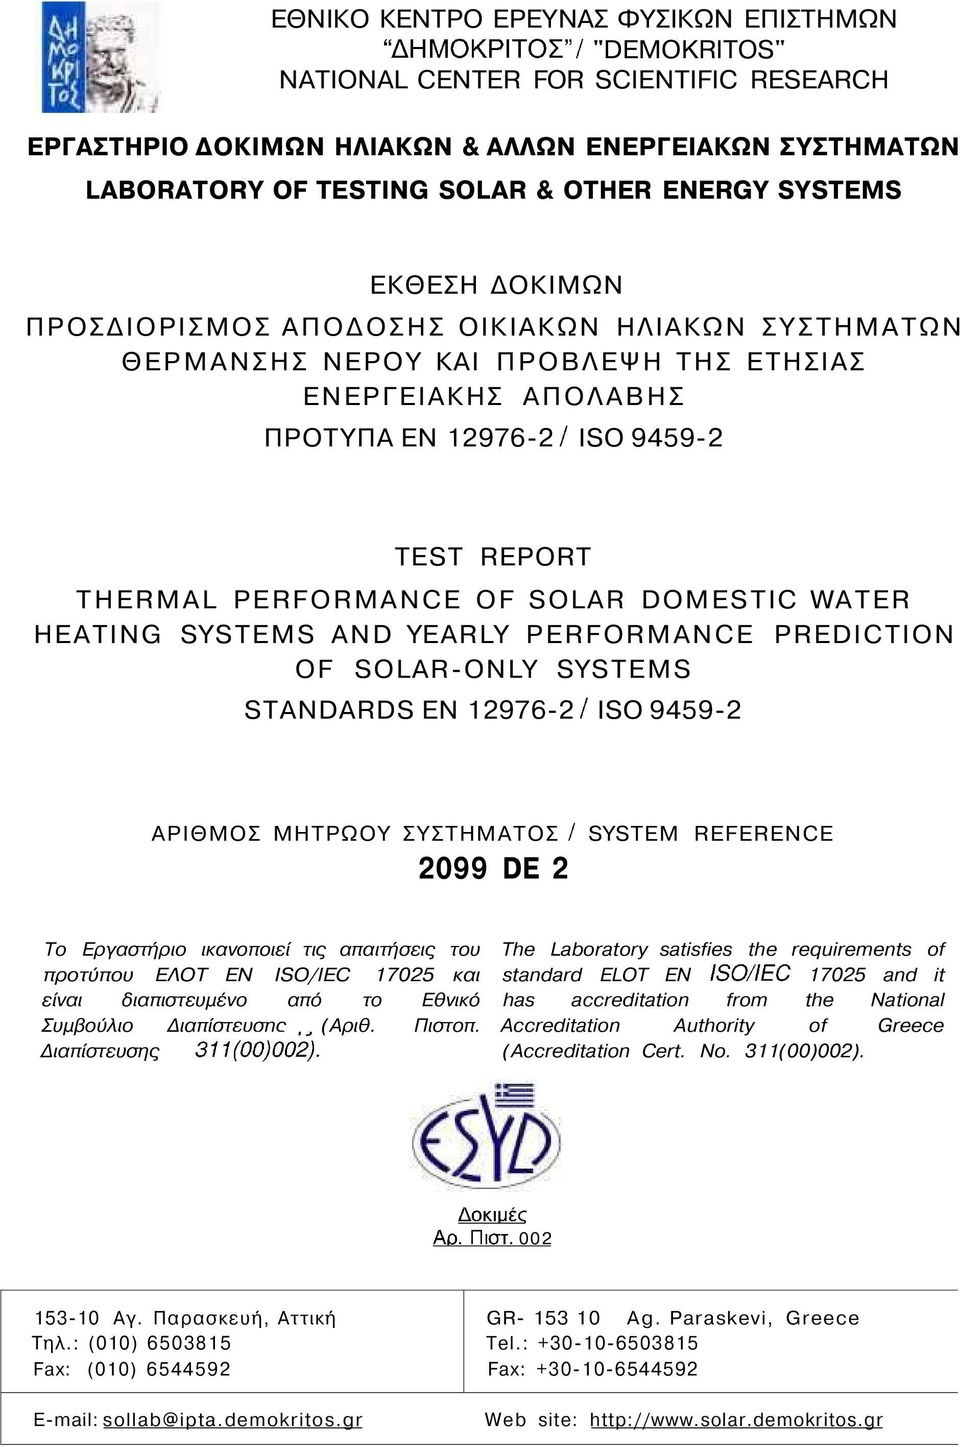 THERMAL PERFORMANCE OF SOLAR DOMESTIC WATER HEATING SYSTEMS AND YEARLY PERFORMANCE PREDICTION OF SOLAR-ONLY SYSTEMS STANDARDS EN 12976-2 / ISO 9459-2 ΑΡΙΘΜΟΣ ΜΗΤΡΩΟΥ ΣΥΣΤΗΜΑΤΟΣ / SYSTEM REFERENCE